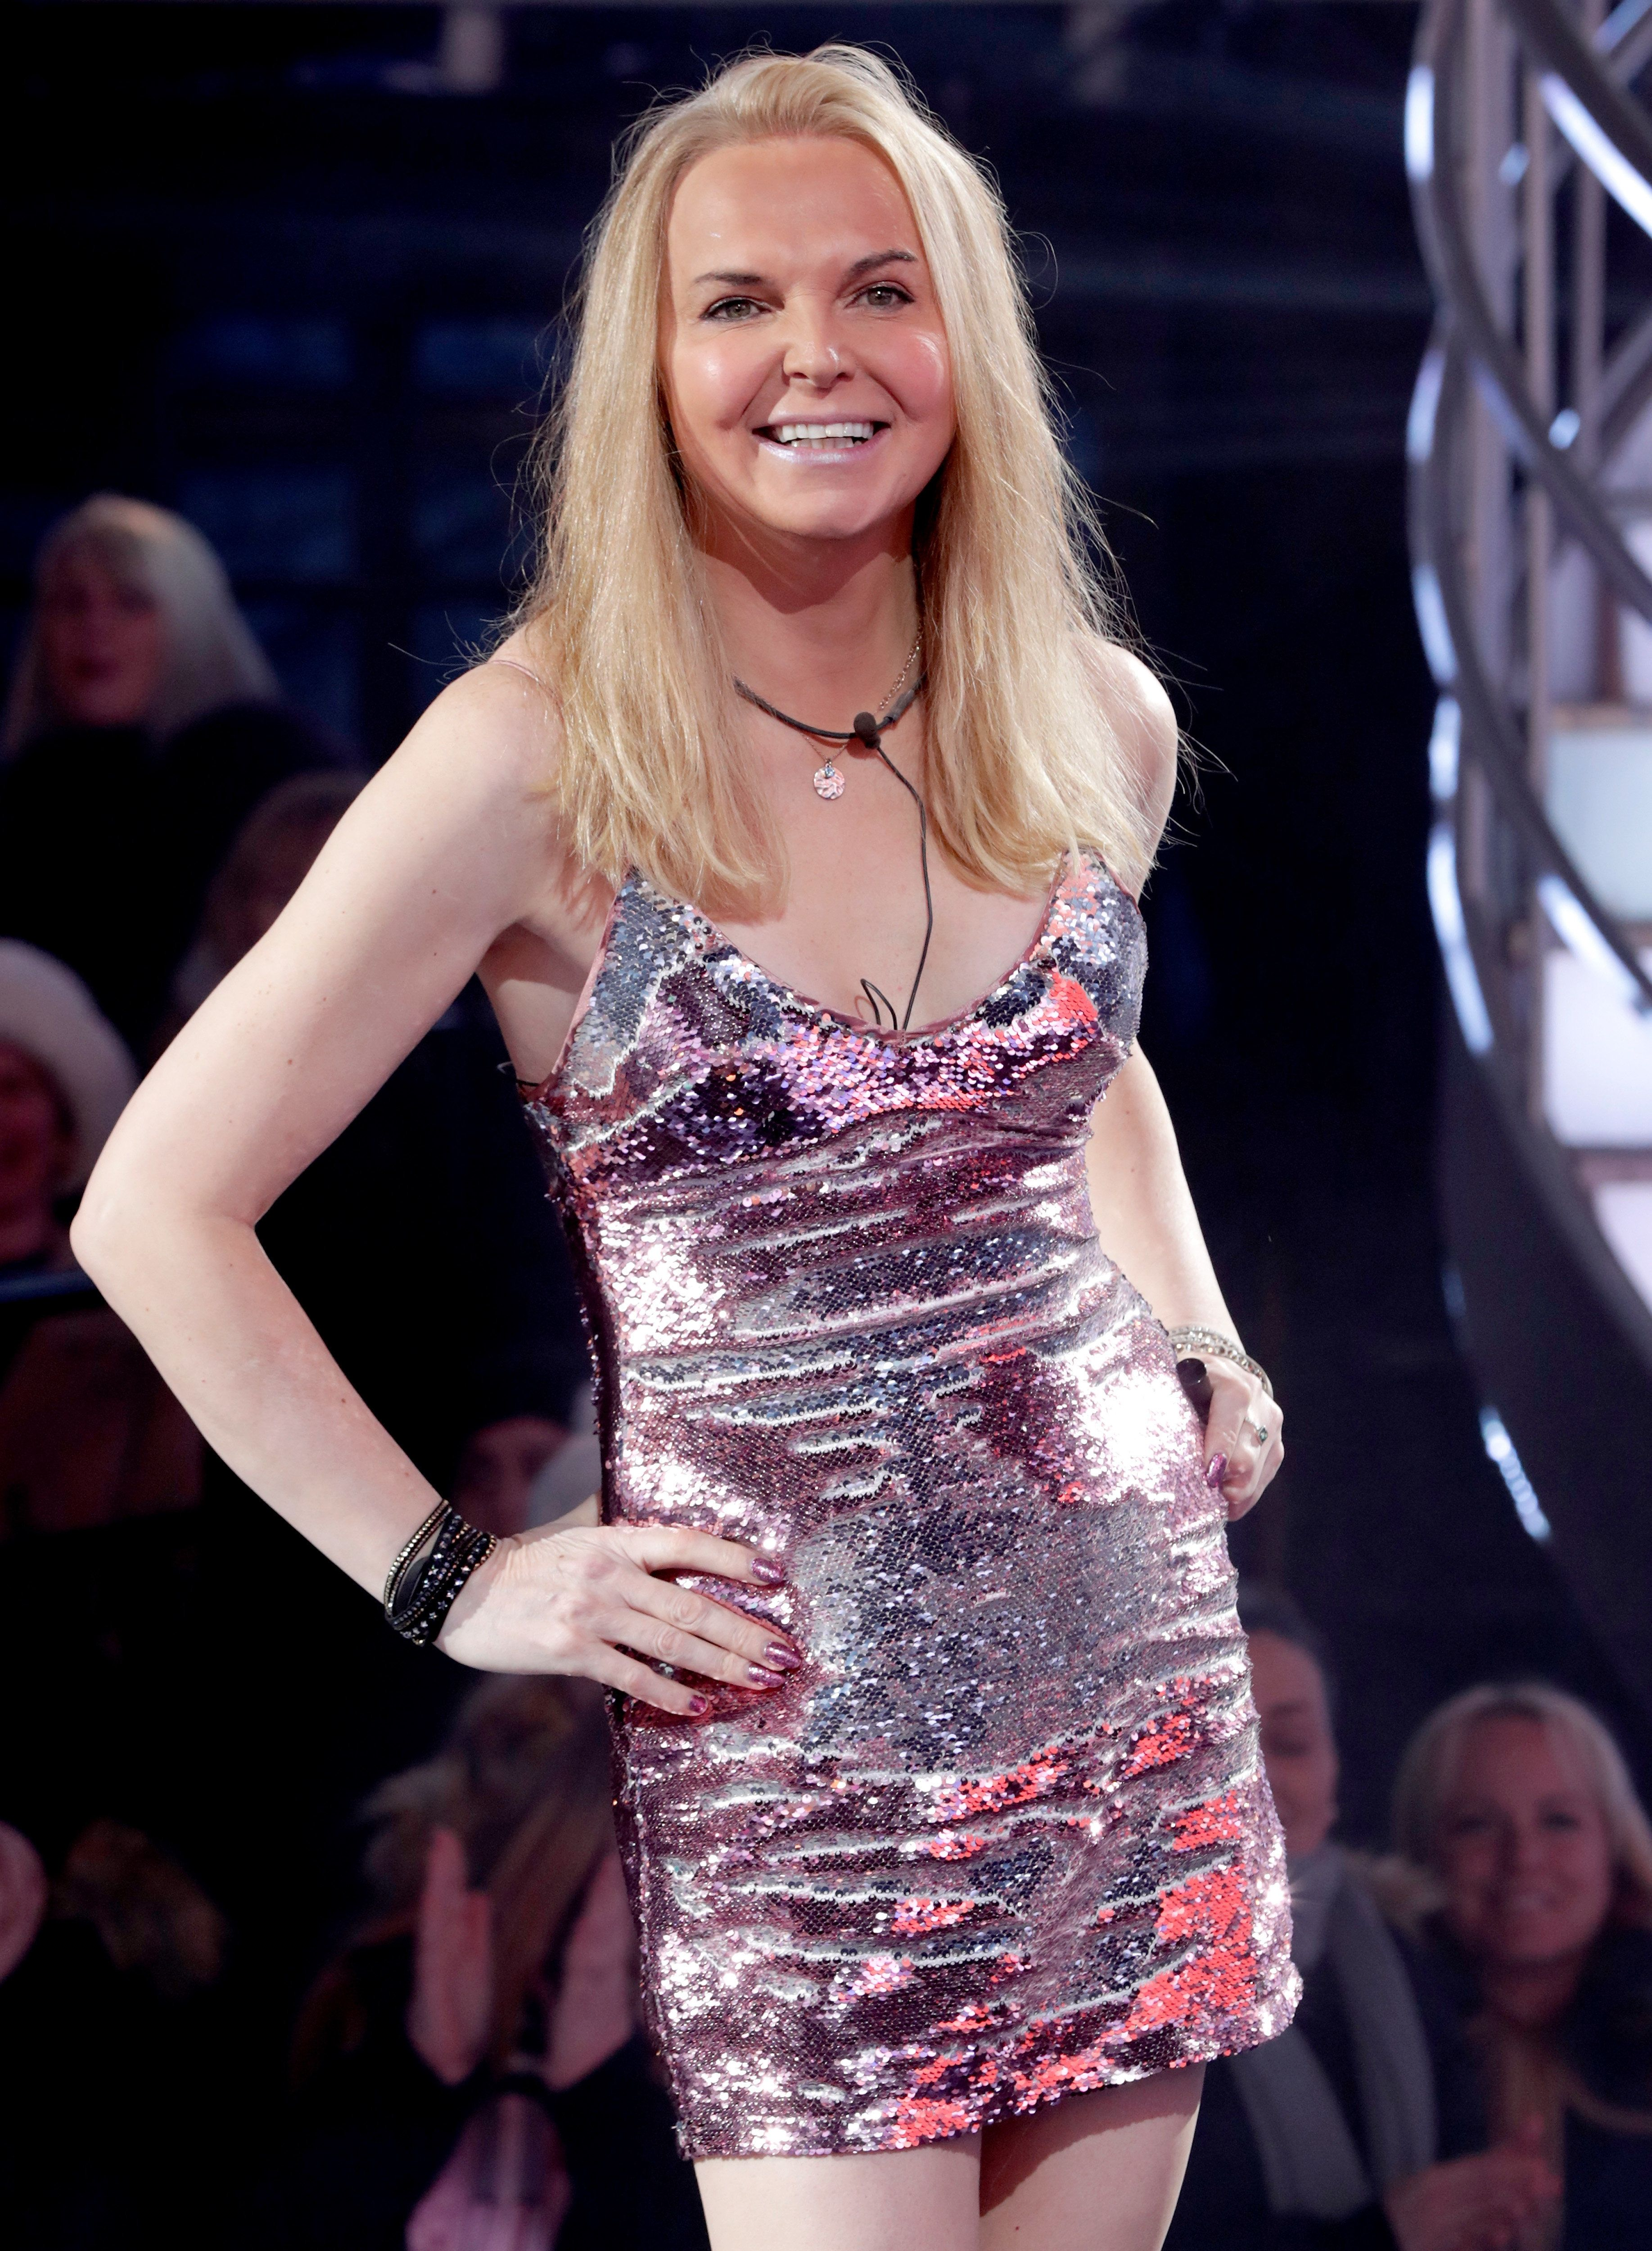 'I Don't Feel I've Done Myself Justice': CBB's India Reveals Regrets After